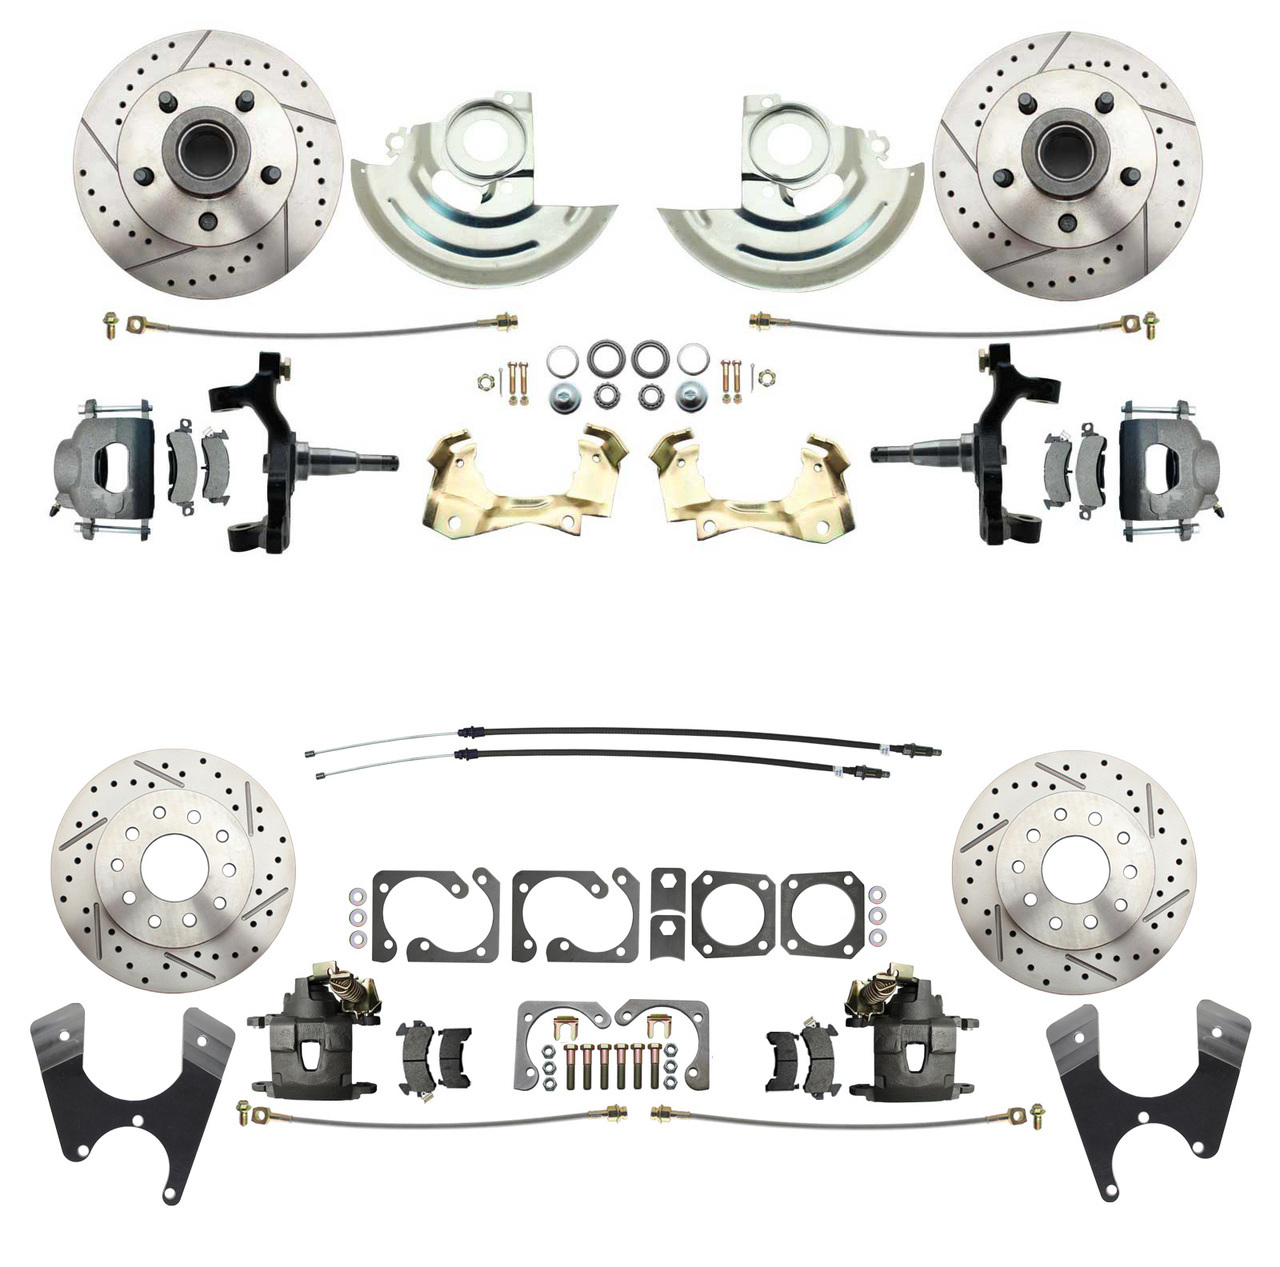 1964-1972 GM A Body (Chevelle, GTO, Cutlass) 2 Drop Front & Rear Disc Brake Kit W/ Drilled & Slotted Rotors